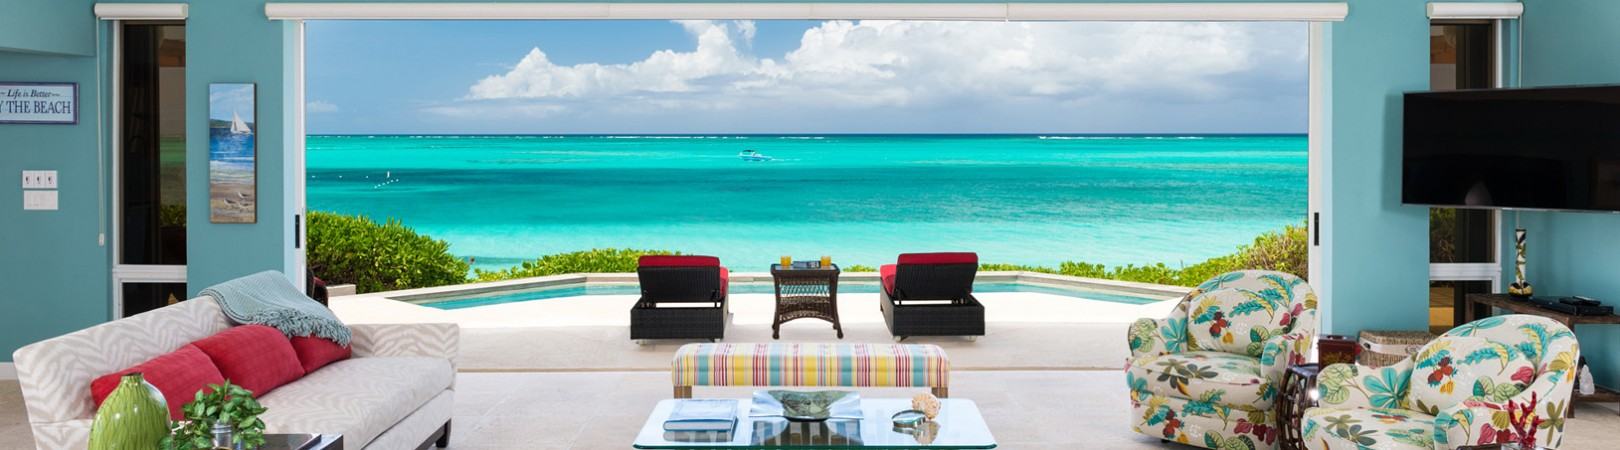 turks-and-caicos-villas_Header